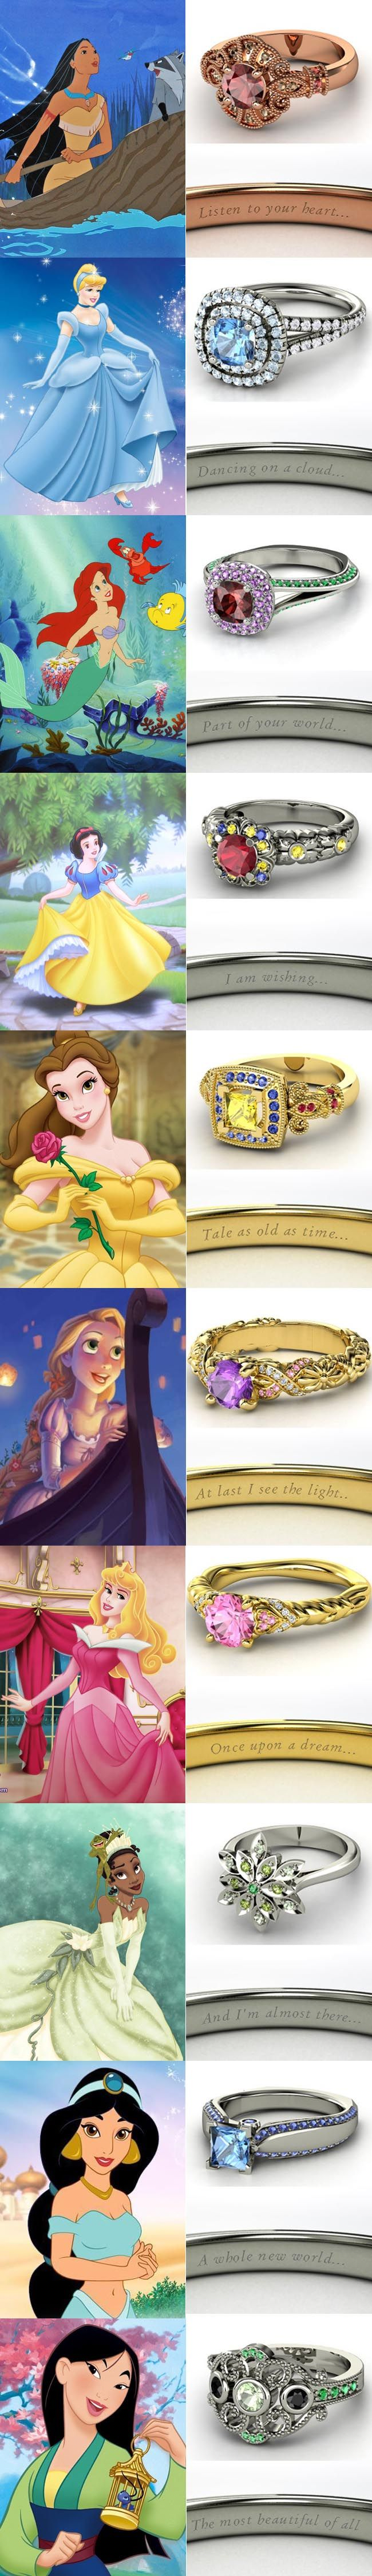 Disney Princess Wedding Rings By Gemvara My Favorite Disney Movies Pinter